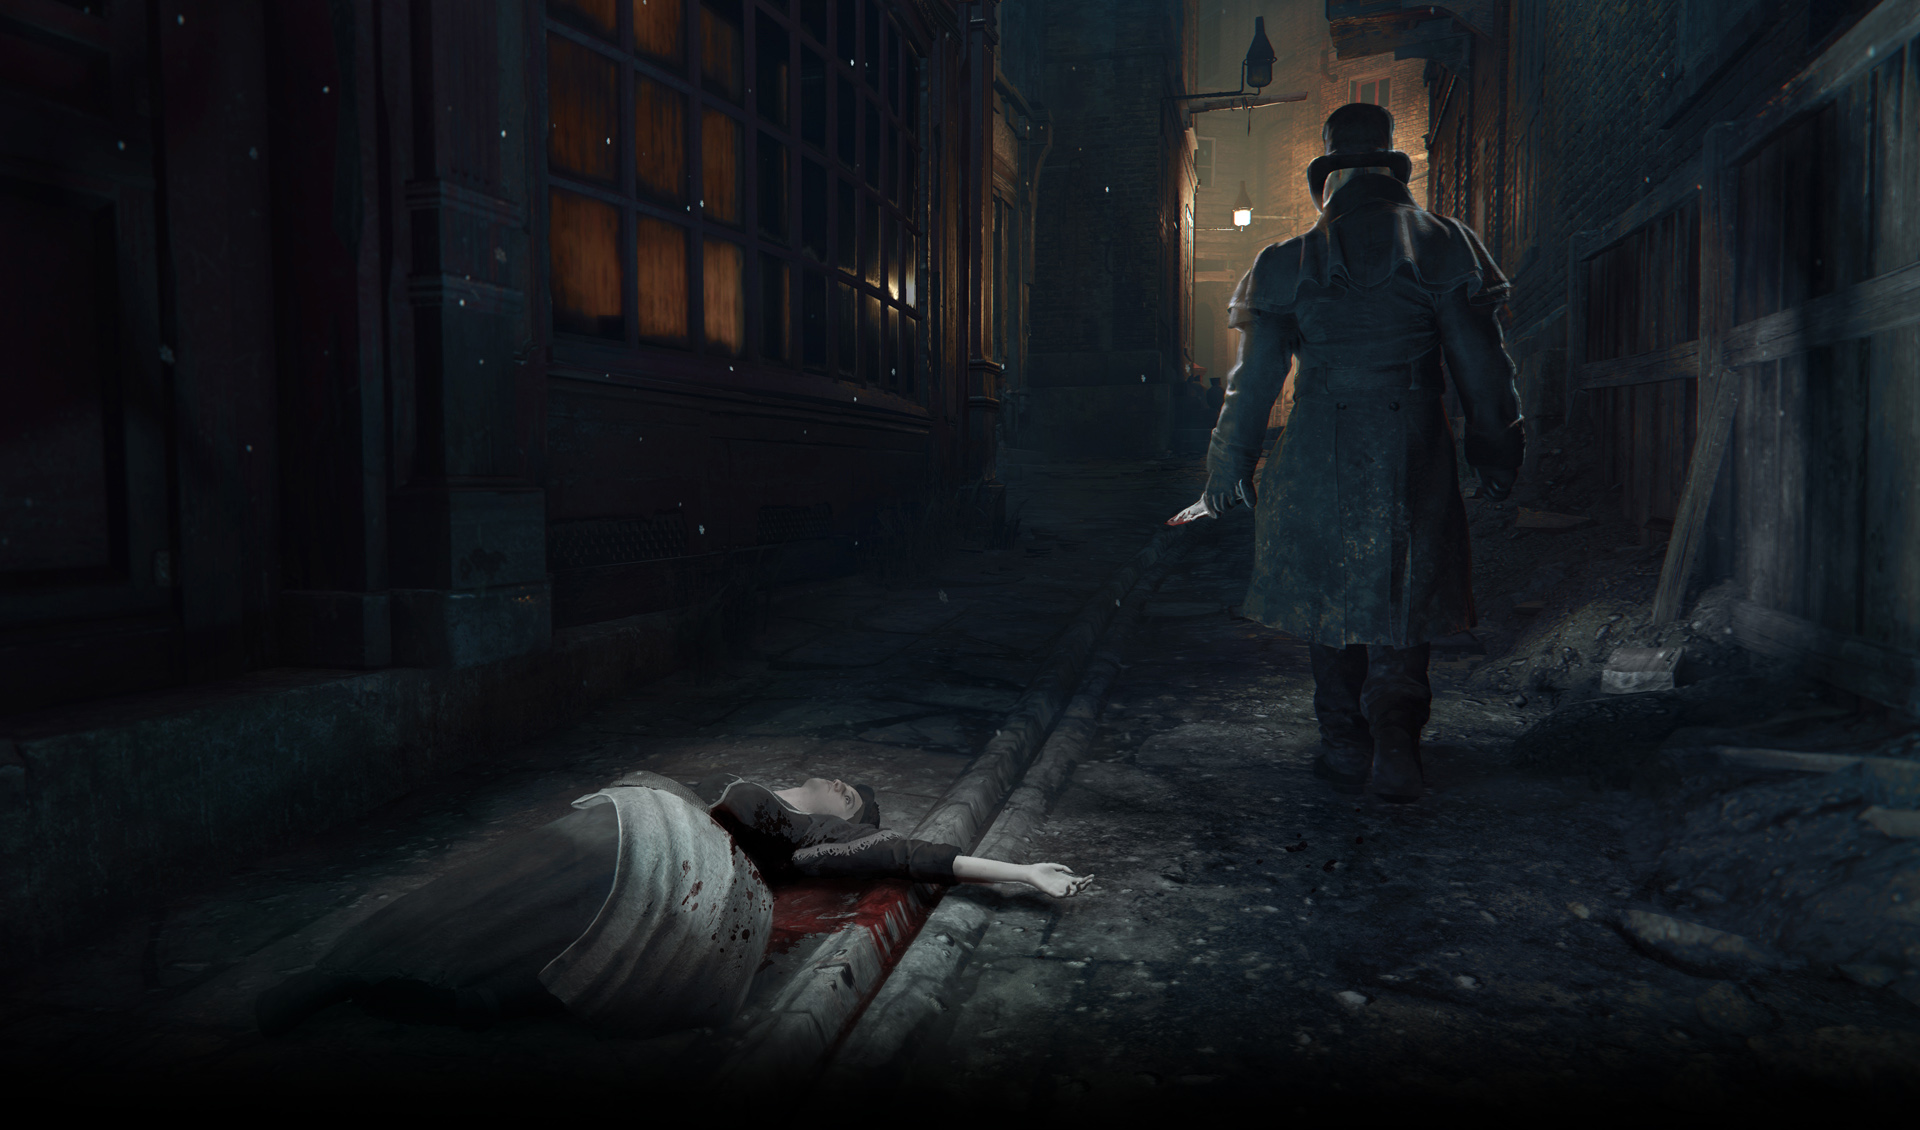 jack ripper Jack the ripper was the first celebrity serial killer who appeared to threaten people that were unknown to him had he been caught,.